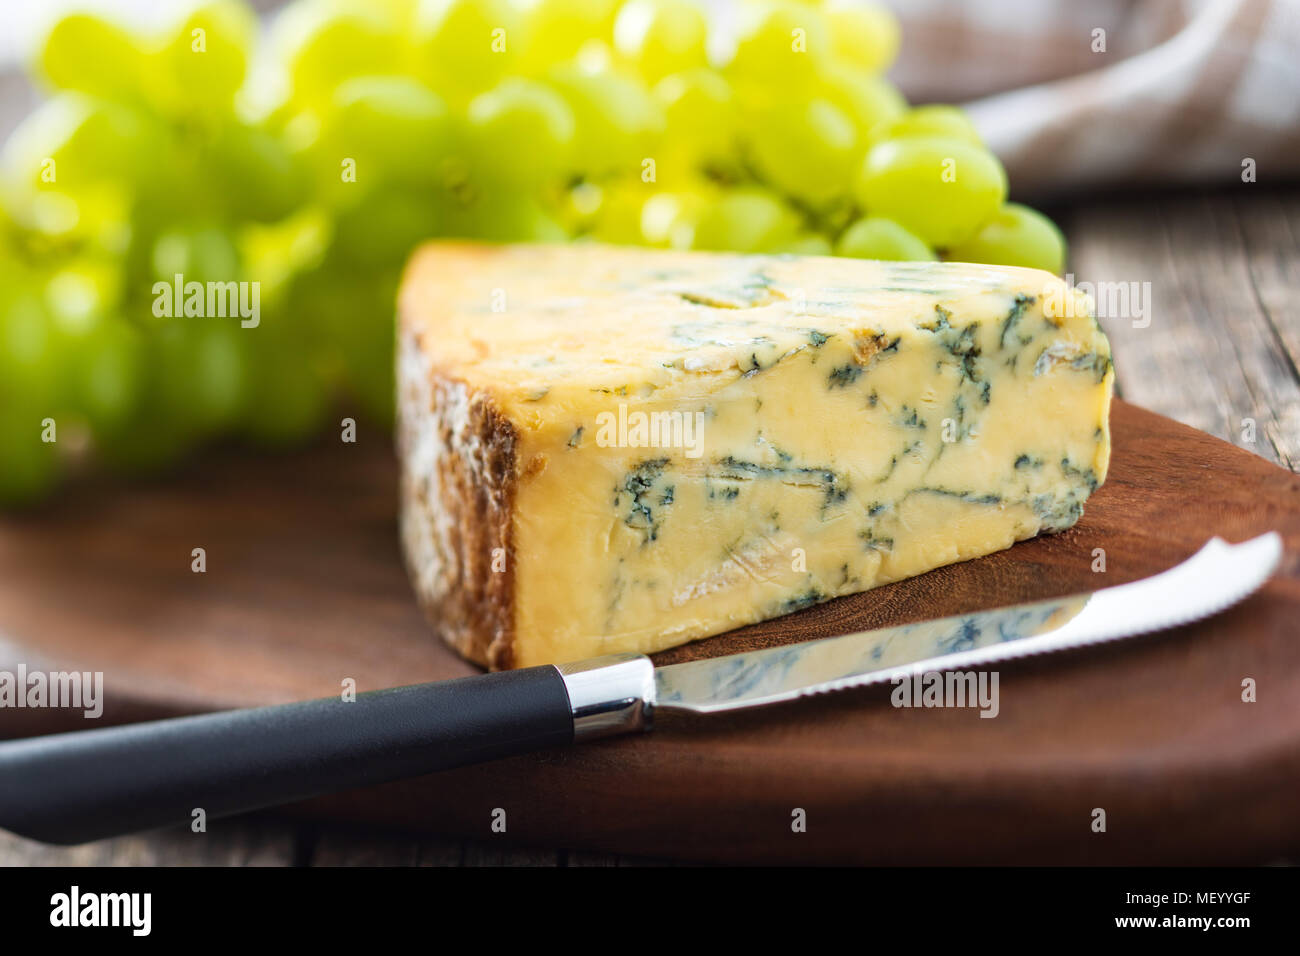 Tasty blue cheese with grapes on cutting board. - Stock Image